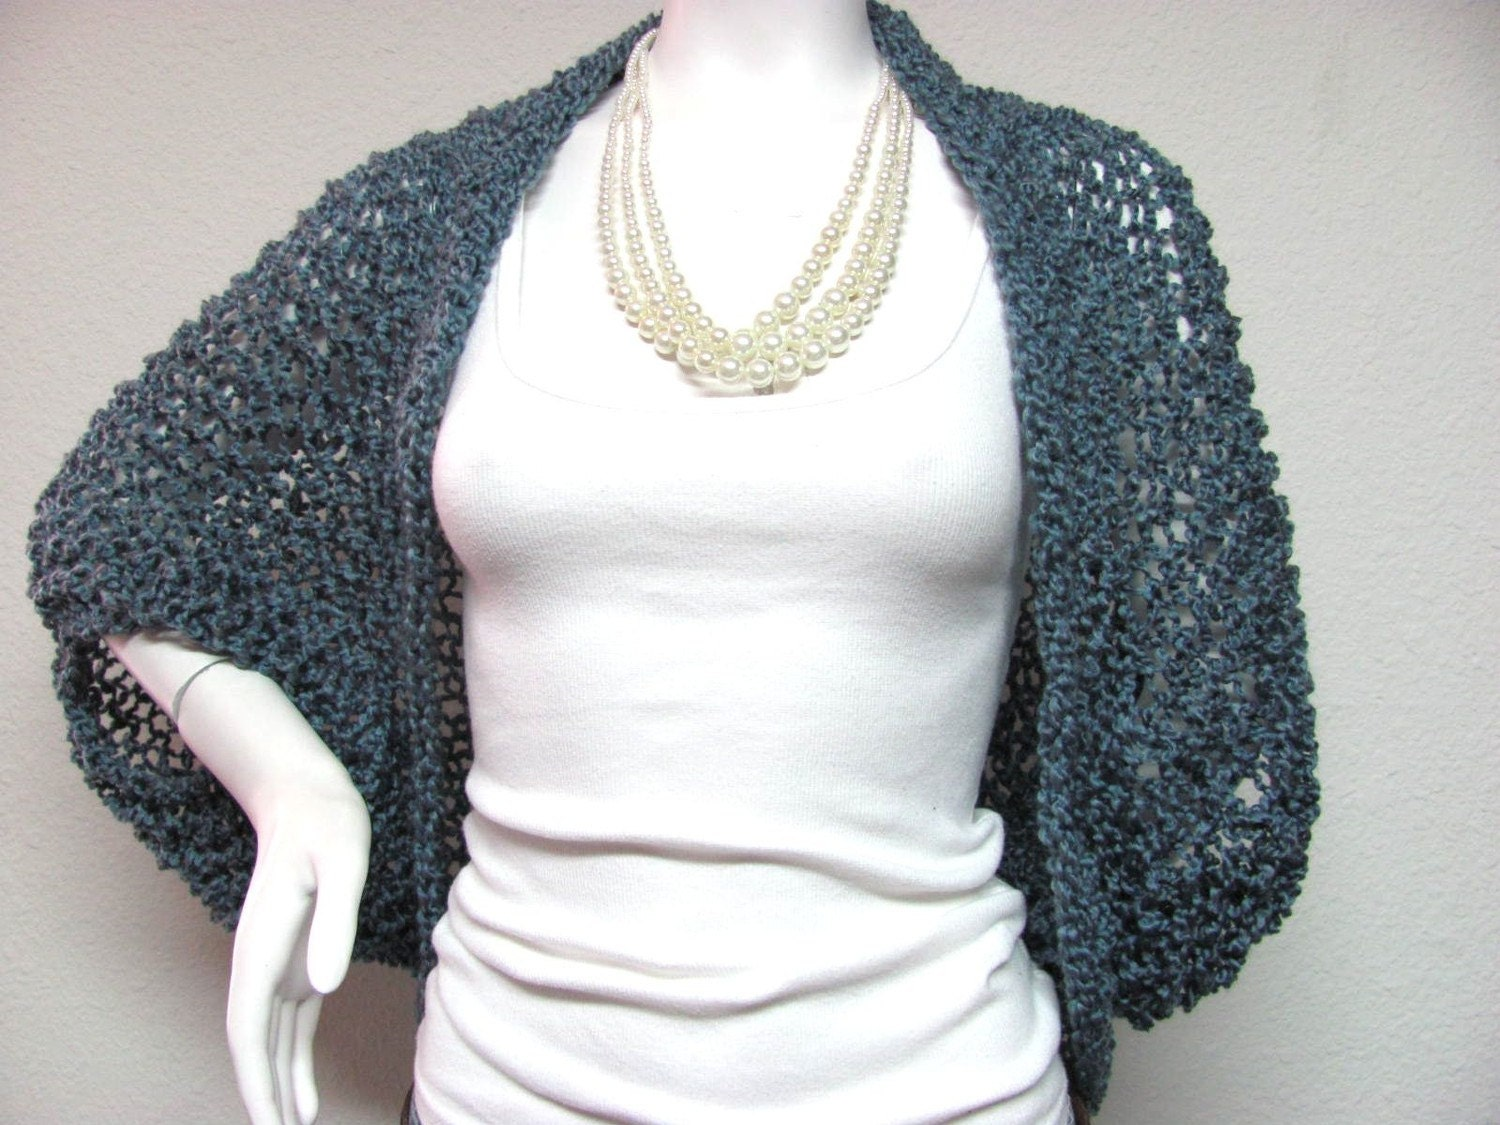 How to Crochet a Shrug | eHow.com